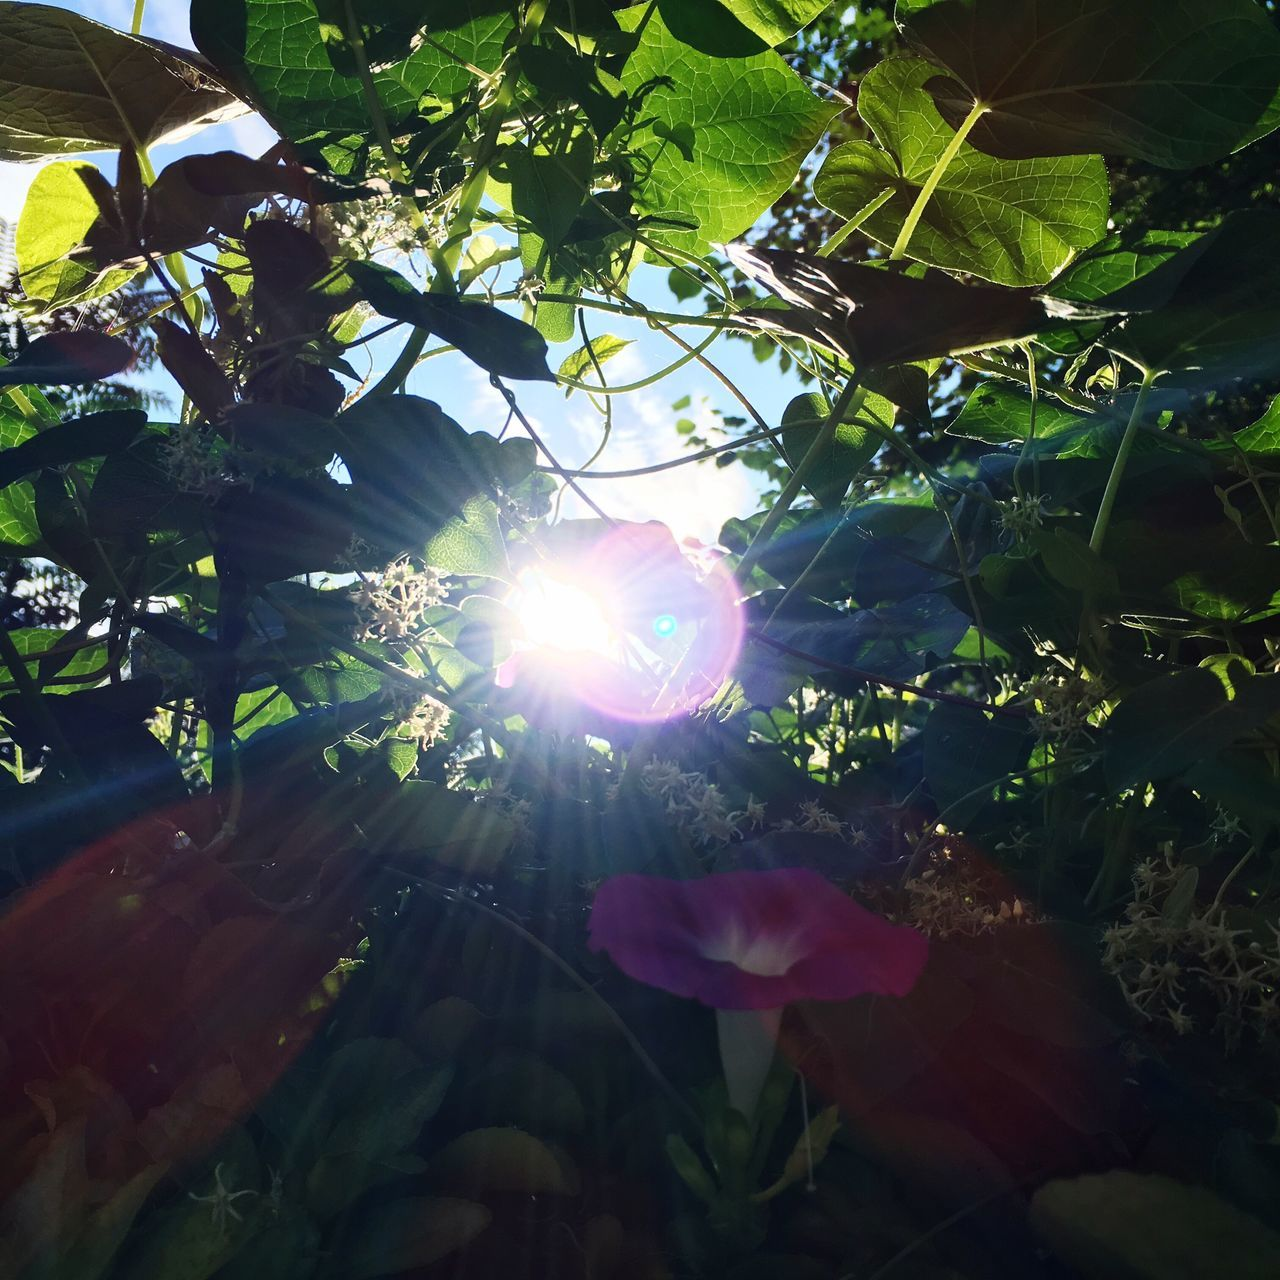 growth, tree, sunlight, lens flare, nature, beauty in nature, leaf, sun, no people, branch, low angle view, flower, plant, outdoors, day, freshness, fragility, close-up, sky